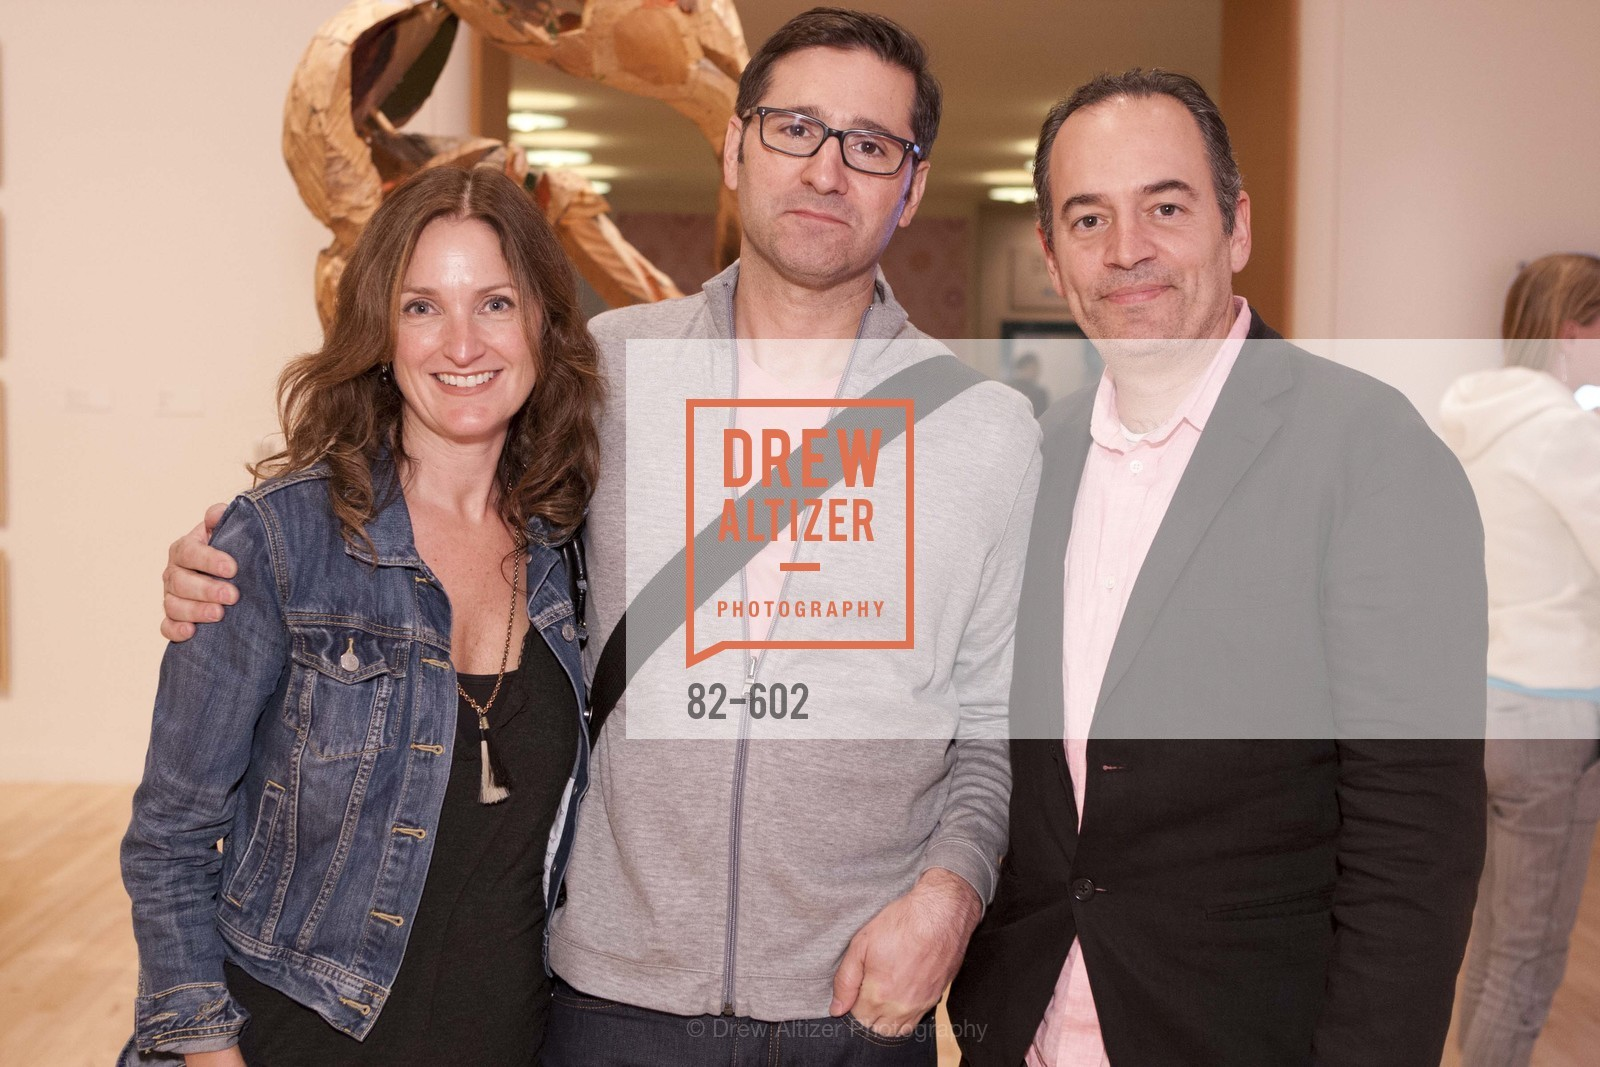 Tyler Stone, Marc Weidenbaum, Paolo Salvagione, SAN JOSE MUSEUM OF ART Fall Reception Opening, US, October 8th, 2014,Drew Altizer, Drew Altizer Photography, full-service agency, private events, San Francisco photographer, photographer california